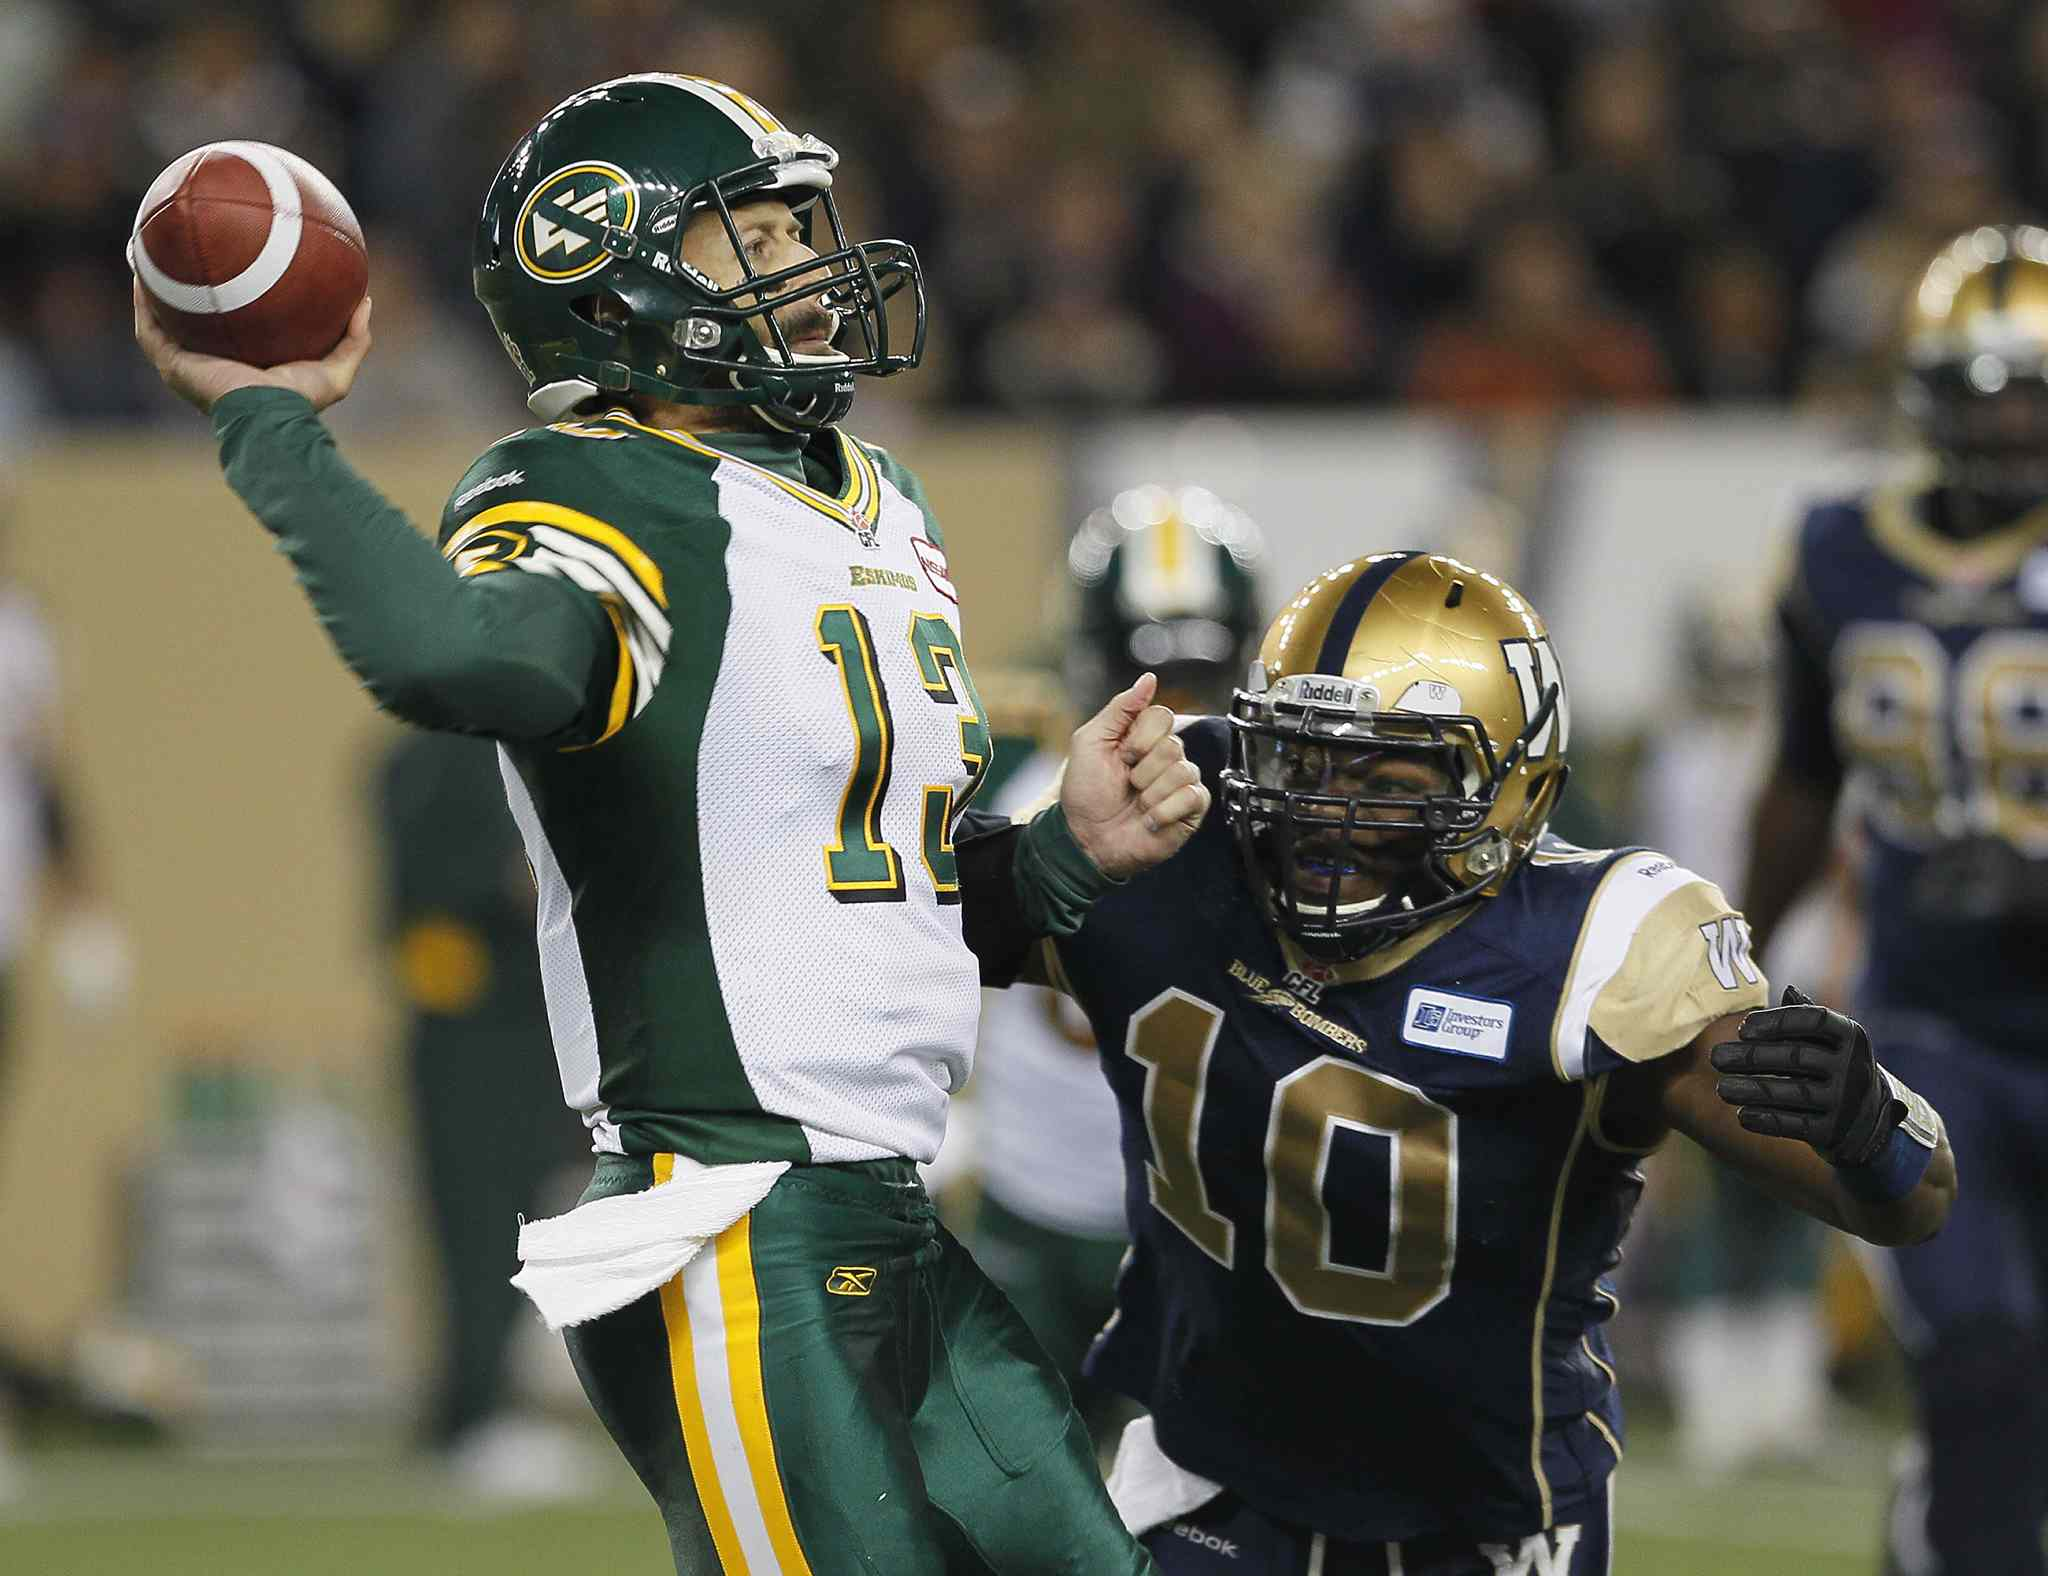 Edmonton Eskimos' quarterback Mike Reilly (left) gets a pass away under pressure from Winnipeg Blue Bombers' Henoc Muamba.